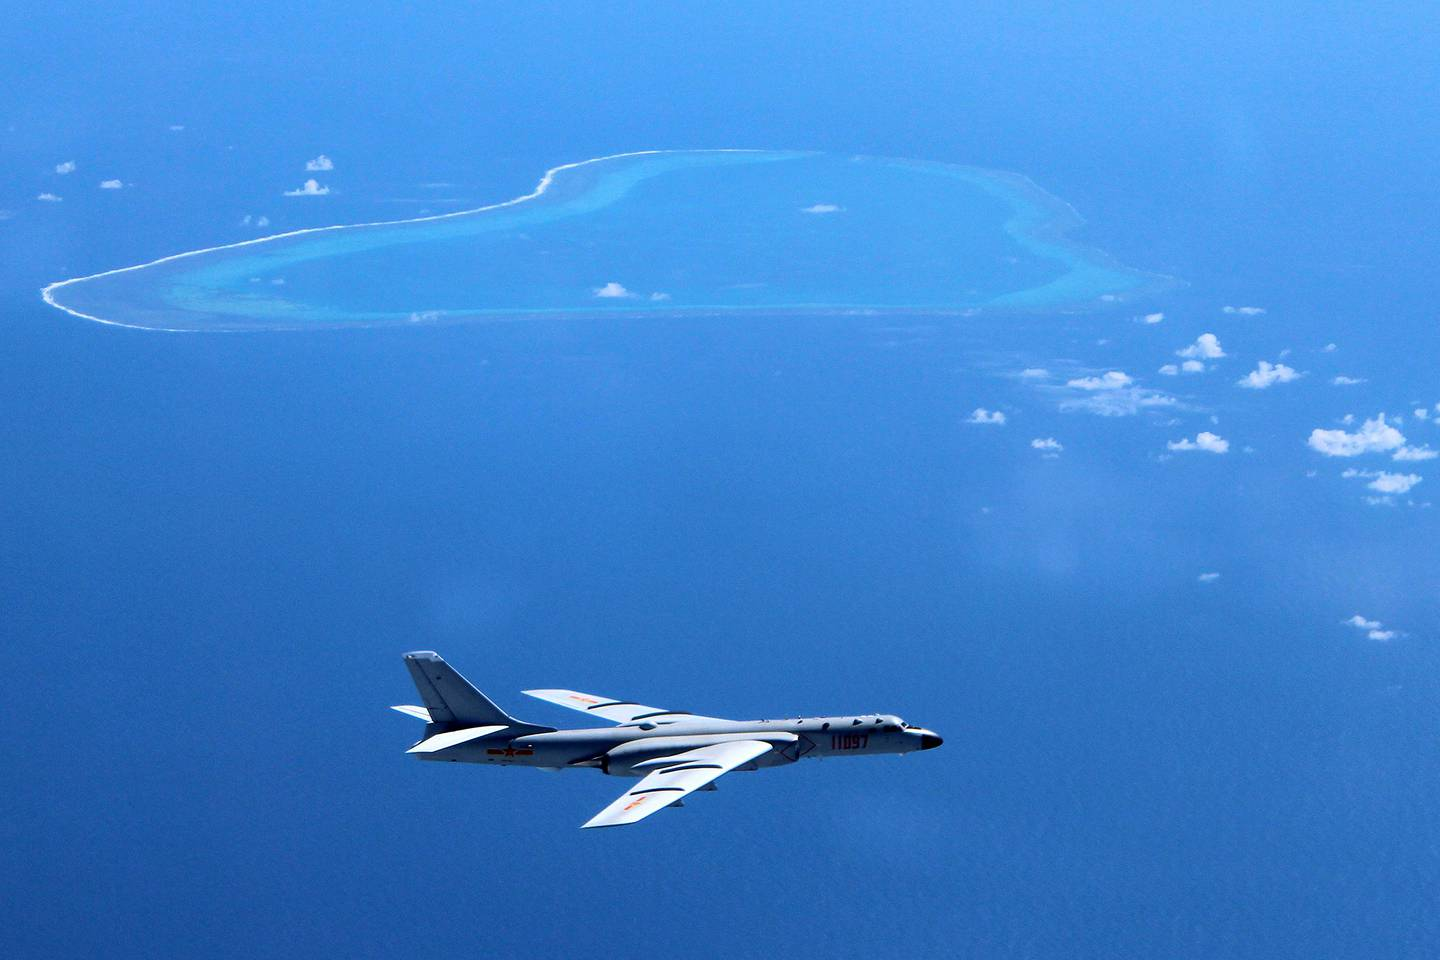 A Chinese H-6K bomber patrols the islands and reefs in the South China Sea in this undated photo.